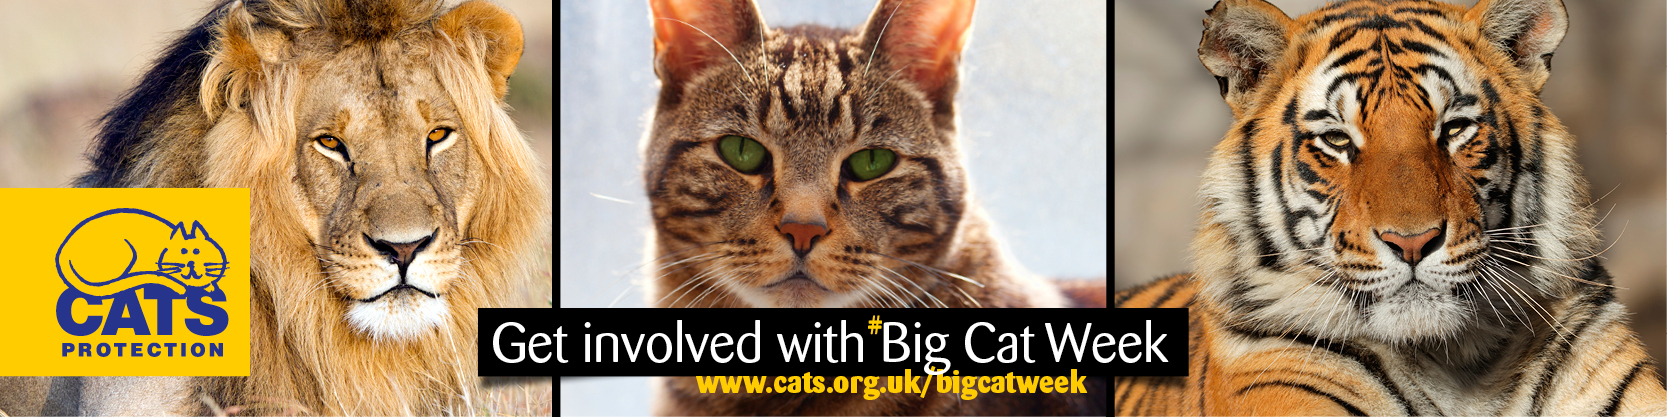 cats protection big cat week 2016